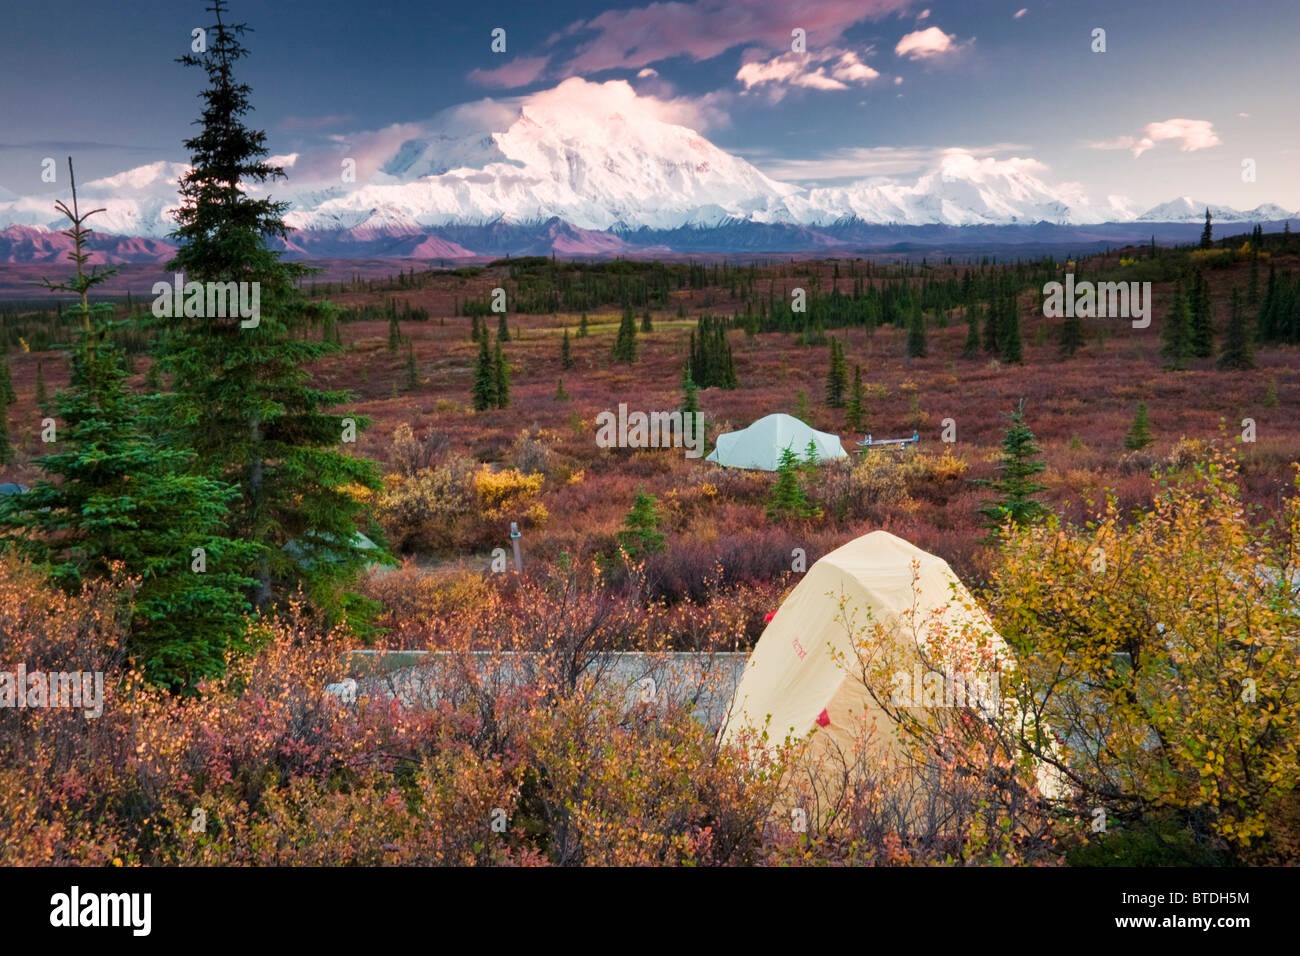 Scenic view of Mt. McKinley from Wonder Lake c&ground with tents in foreground Denali National Park Interior Alaska Autumn & Scenic view of Mt. McKinley from Wonder Lake campground with tents ...